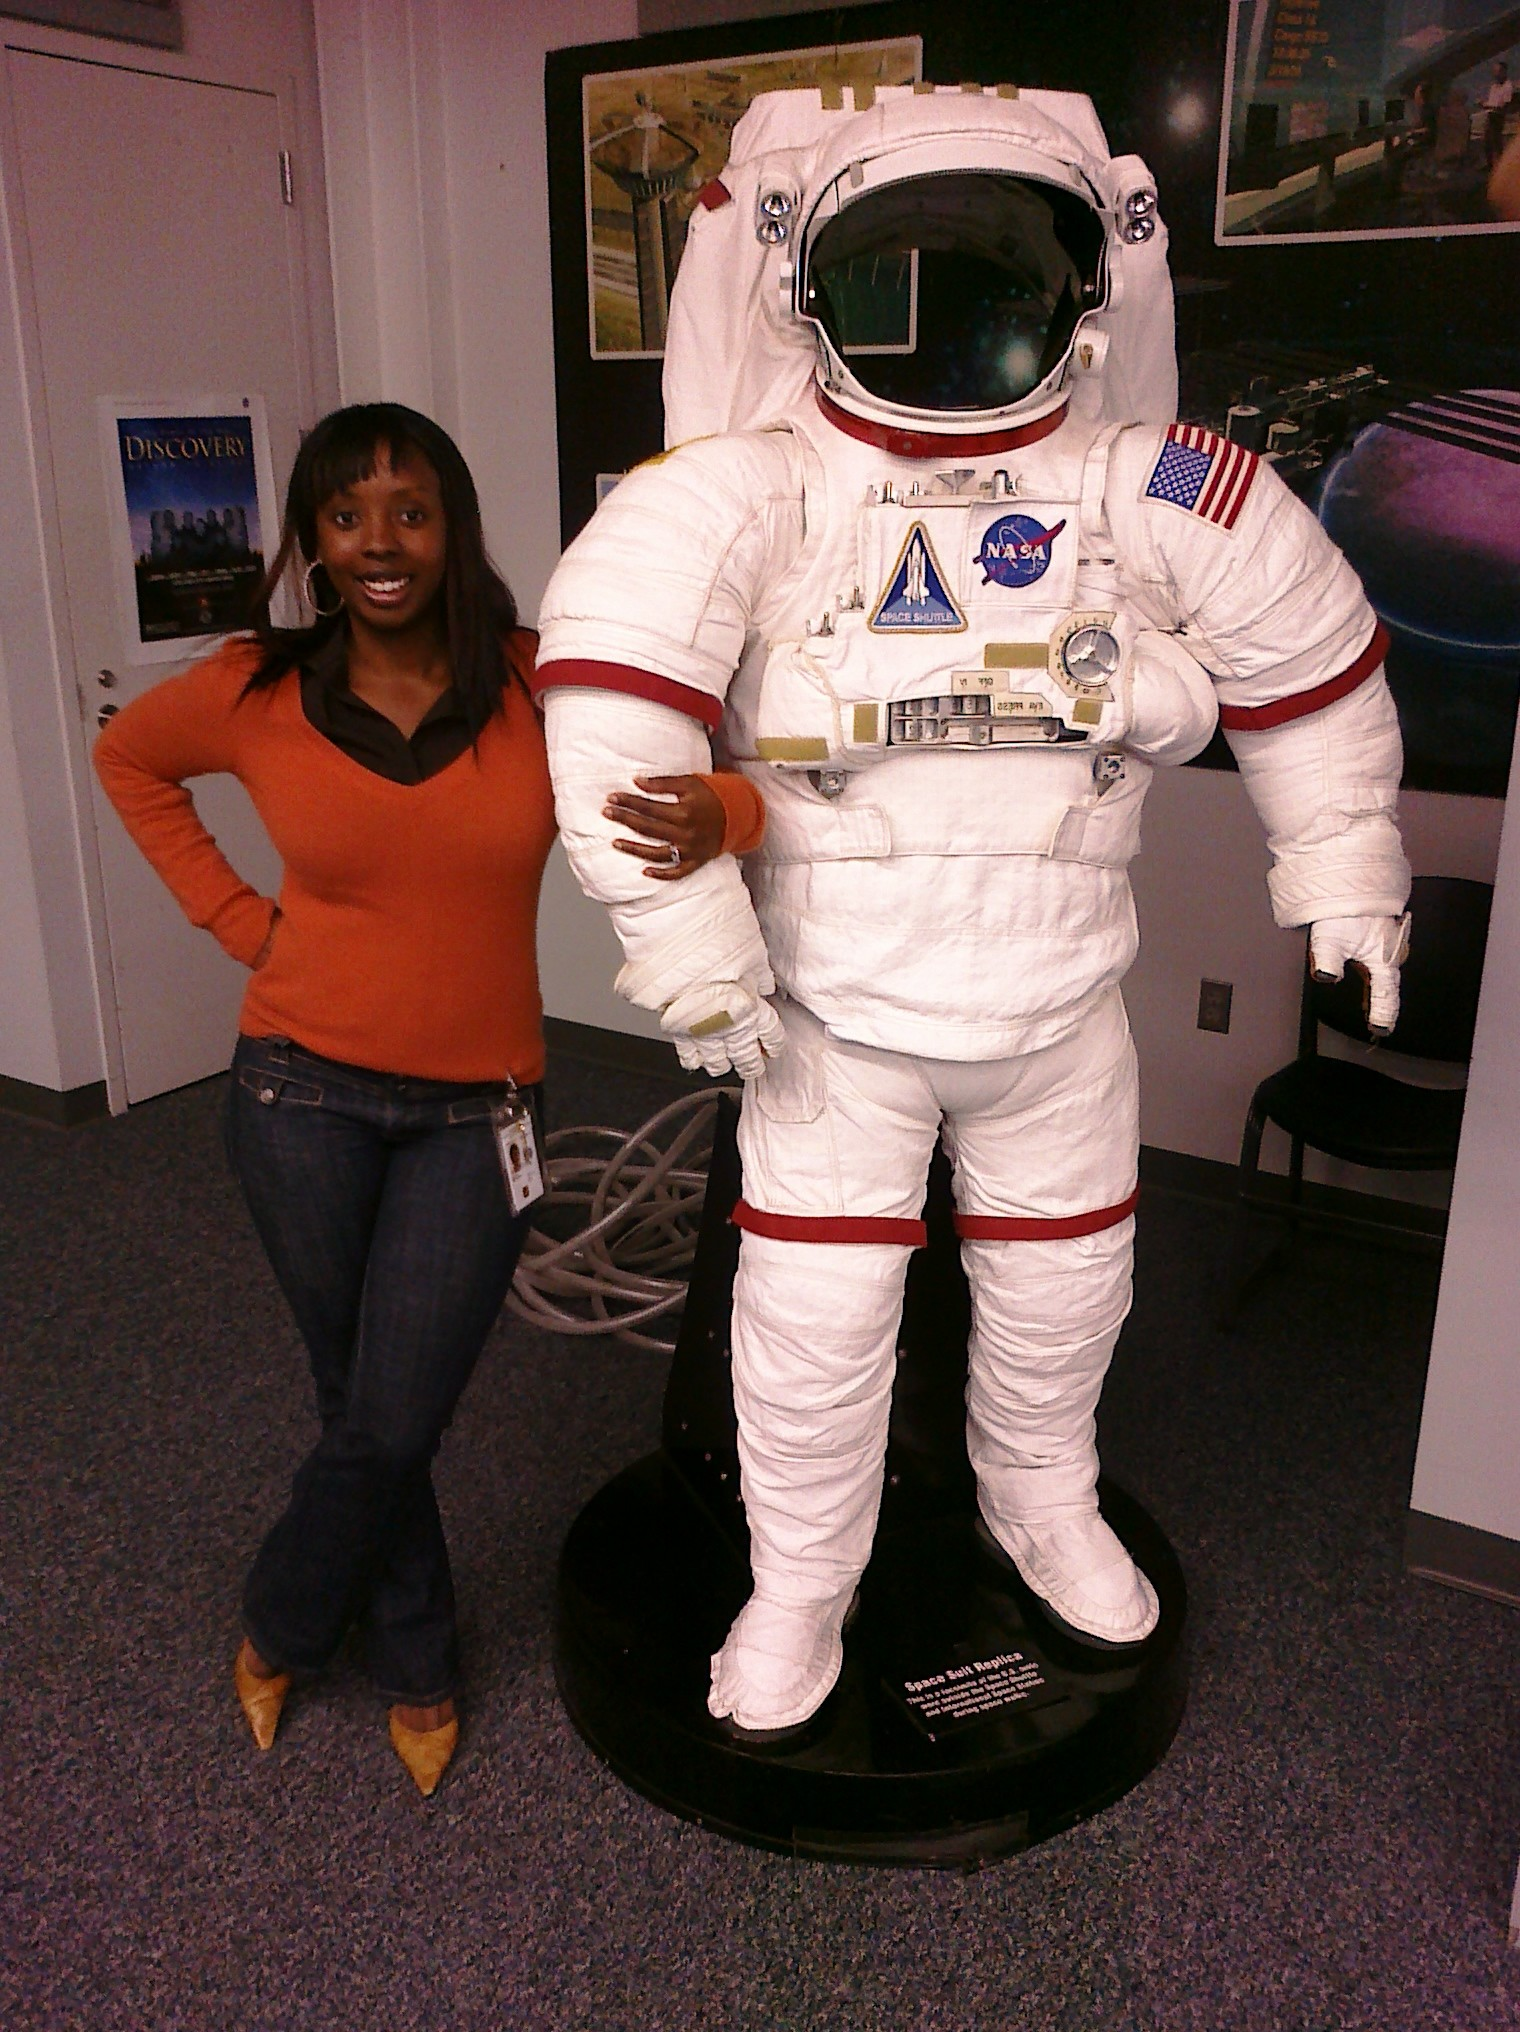 michun_north_with_astronaut_suit_0.jpg